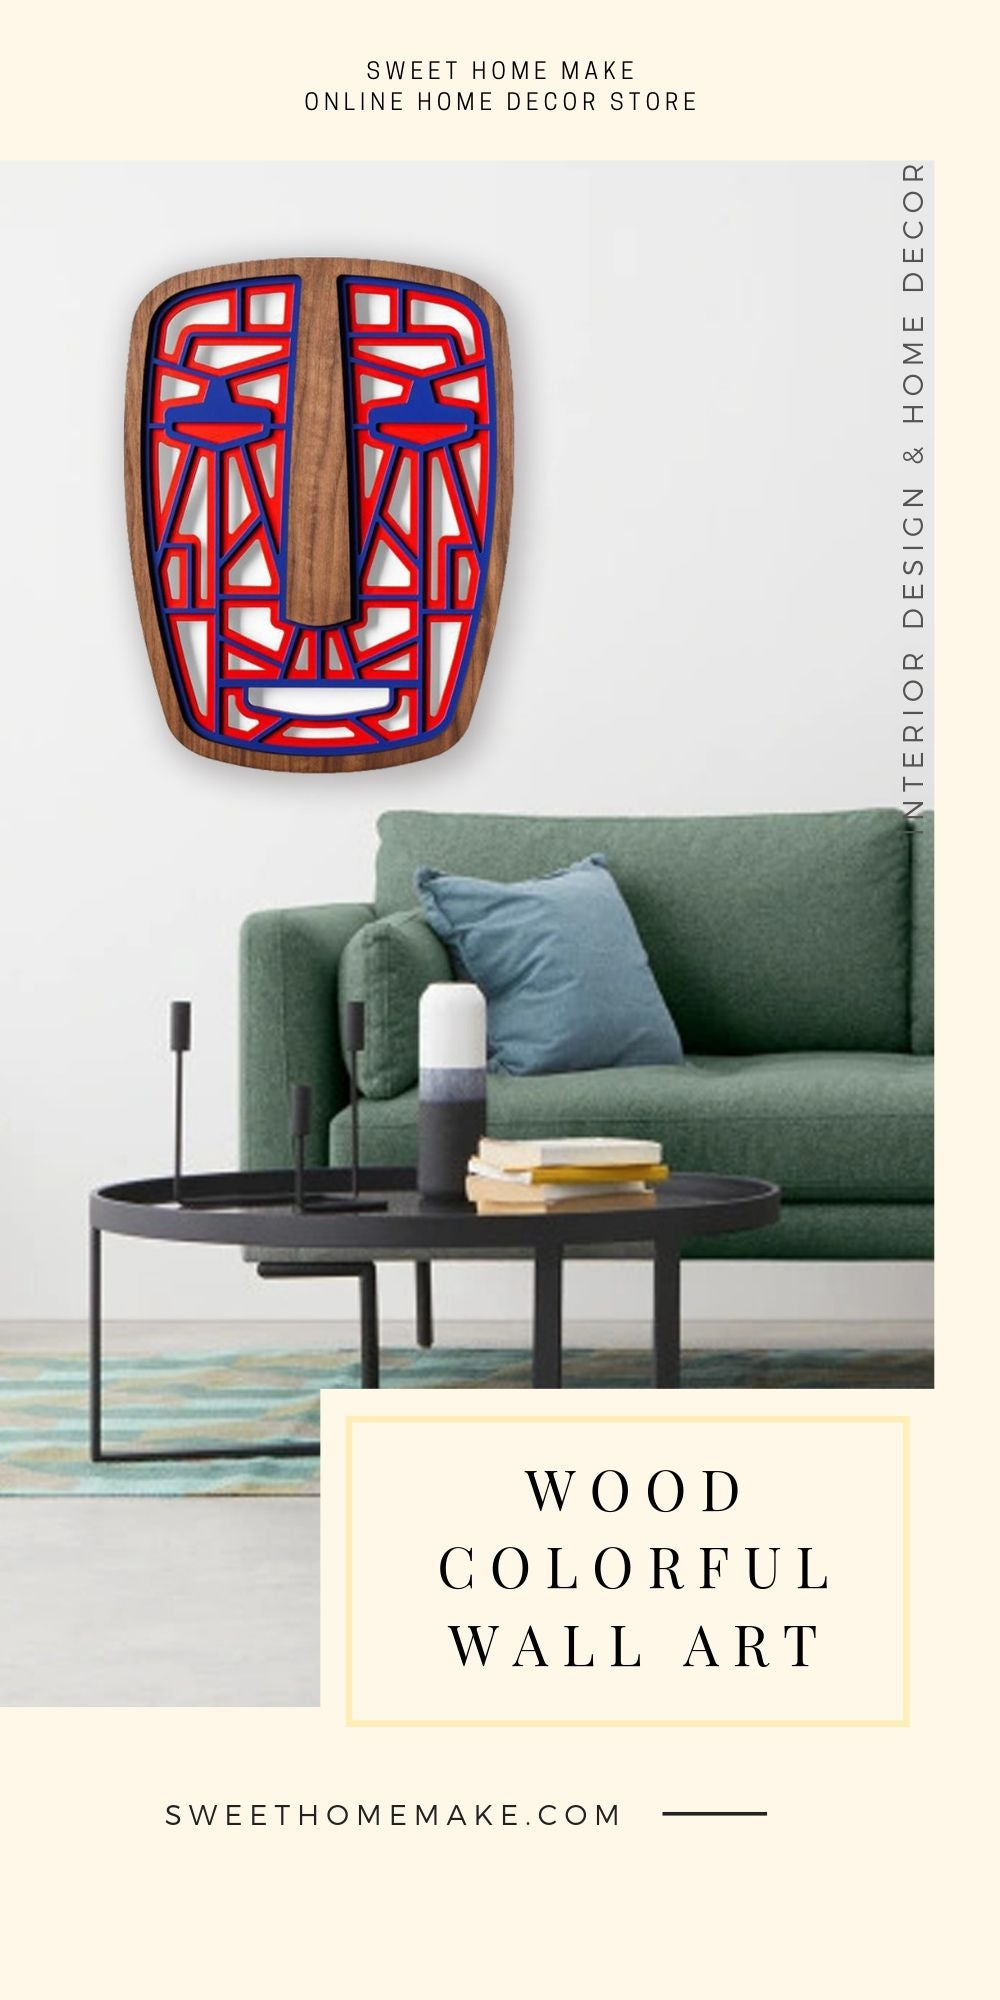 African Wall Mask with Red and Blue Wall Art